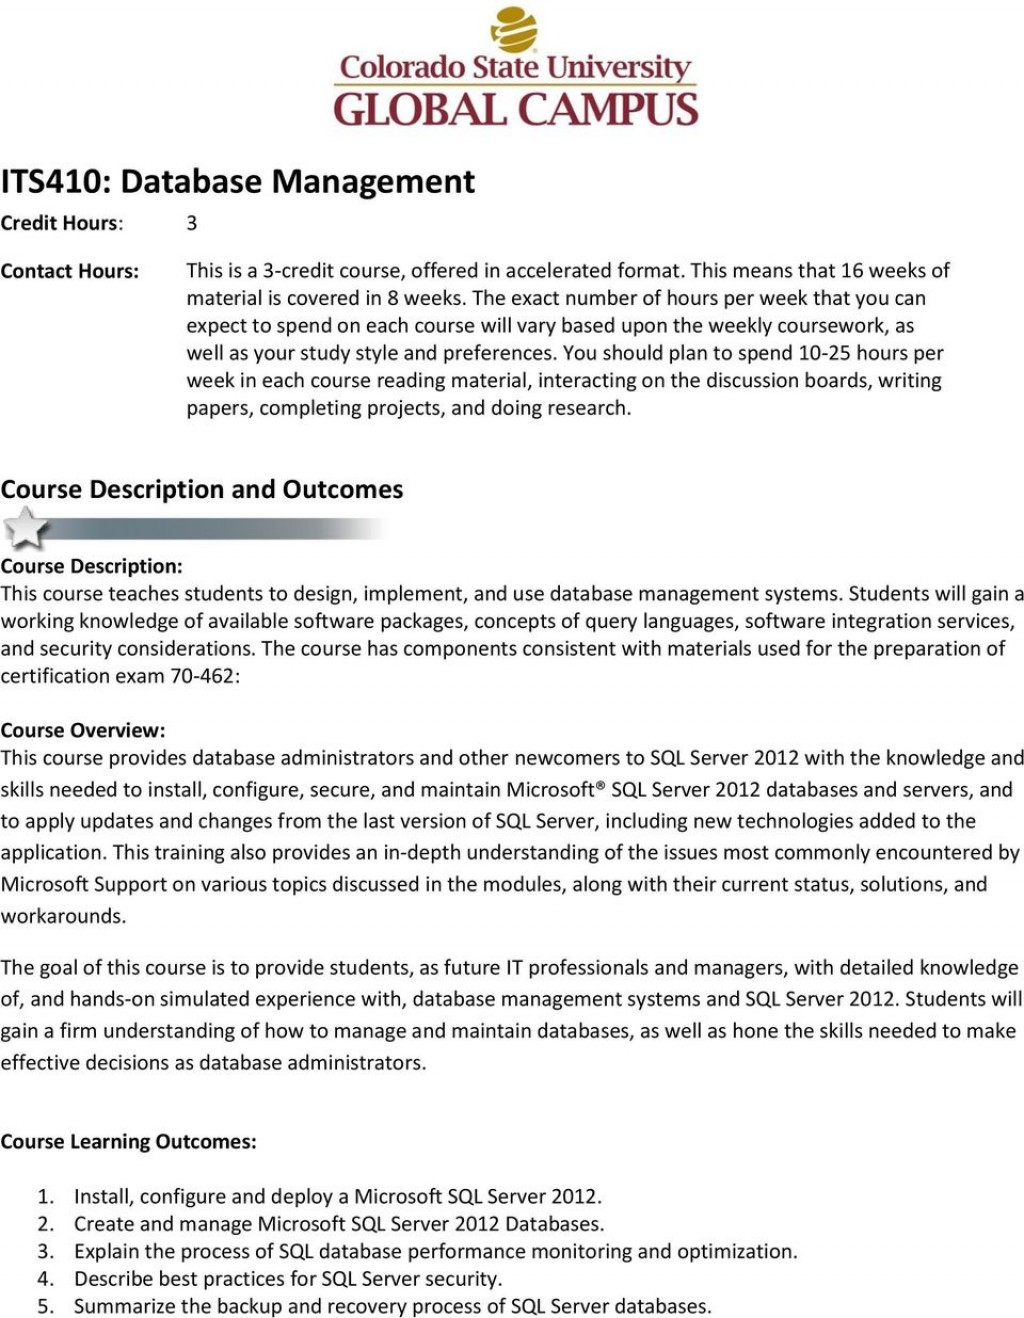 002 Research Paper Page 1 Database Management Amazing Topics On System Large